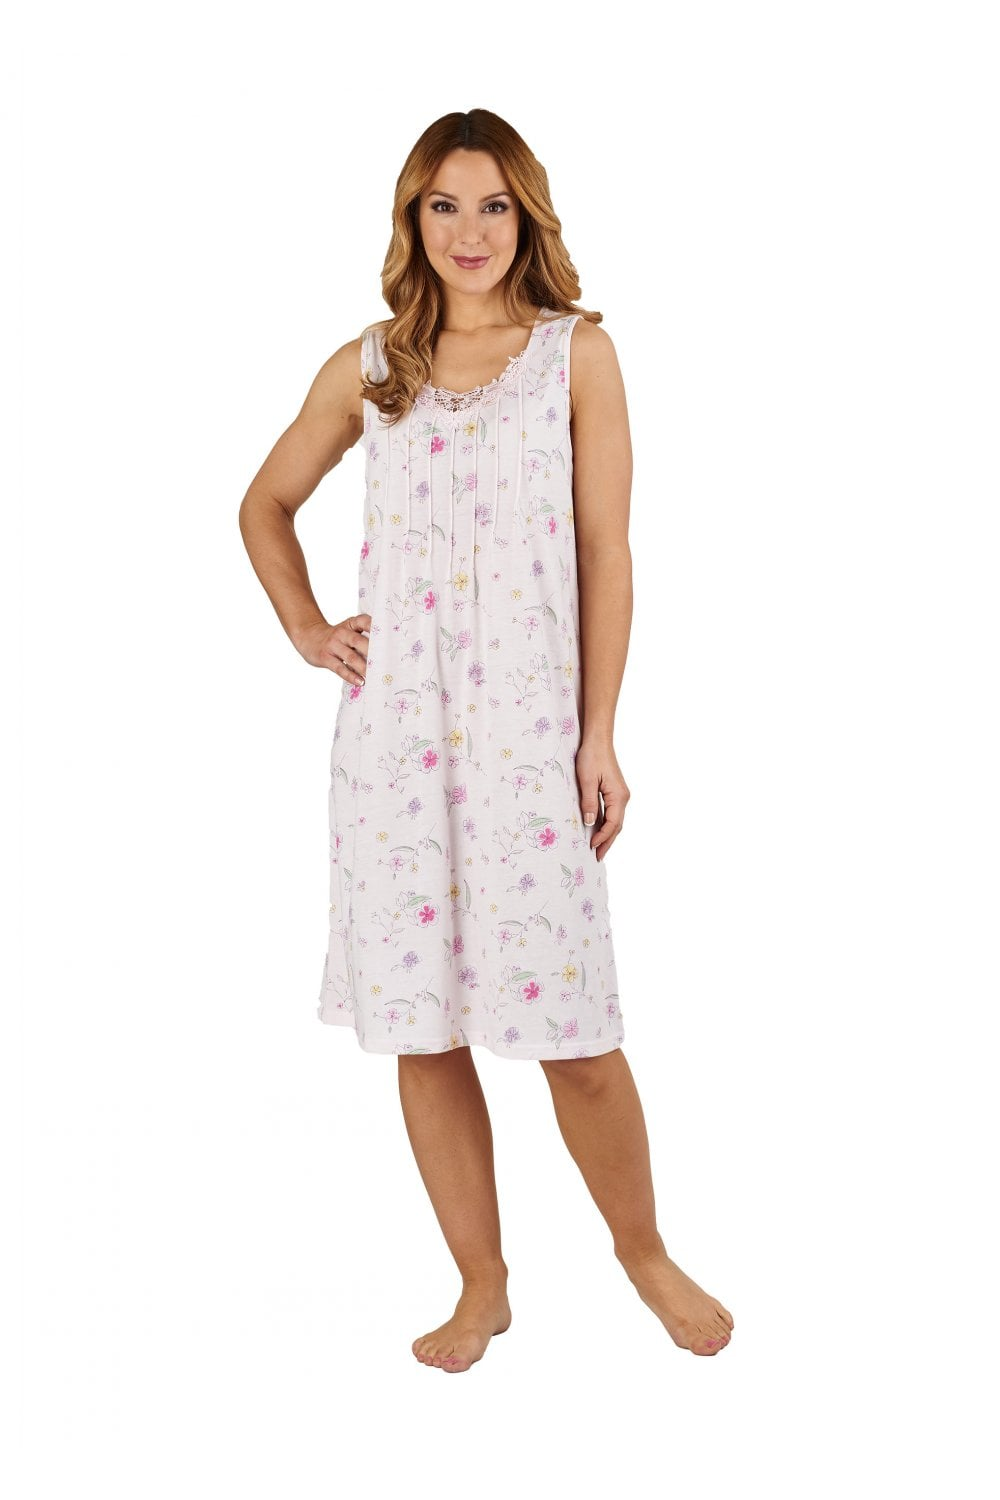 Slenderella Floral Lace Trim Nightdress - Pink - Nightwear   Robes ... d48d0b2be